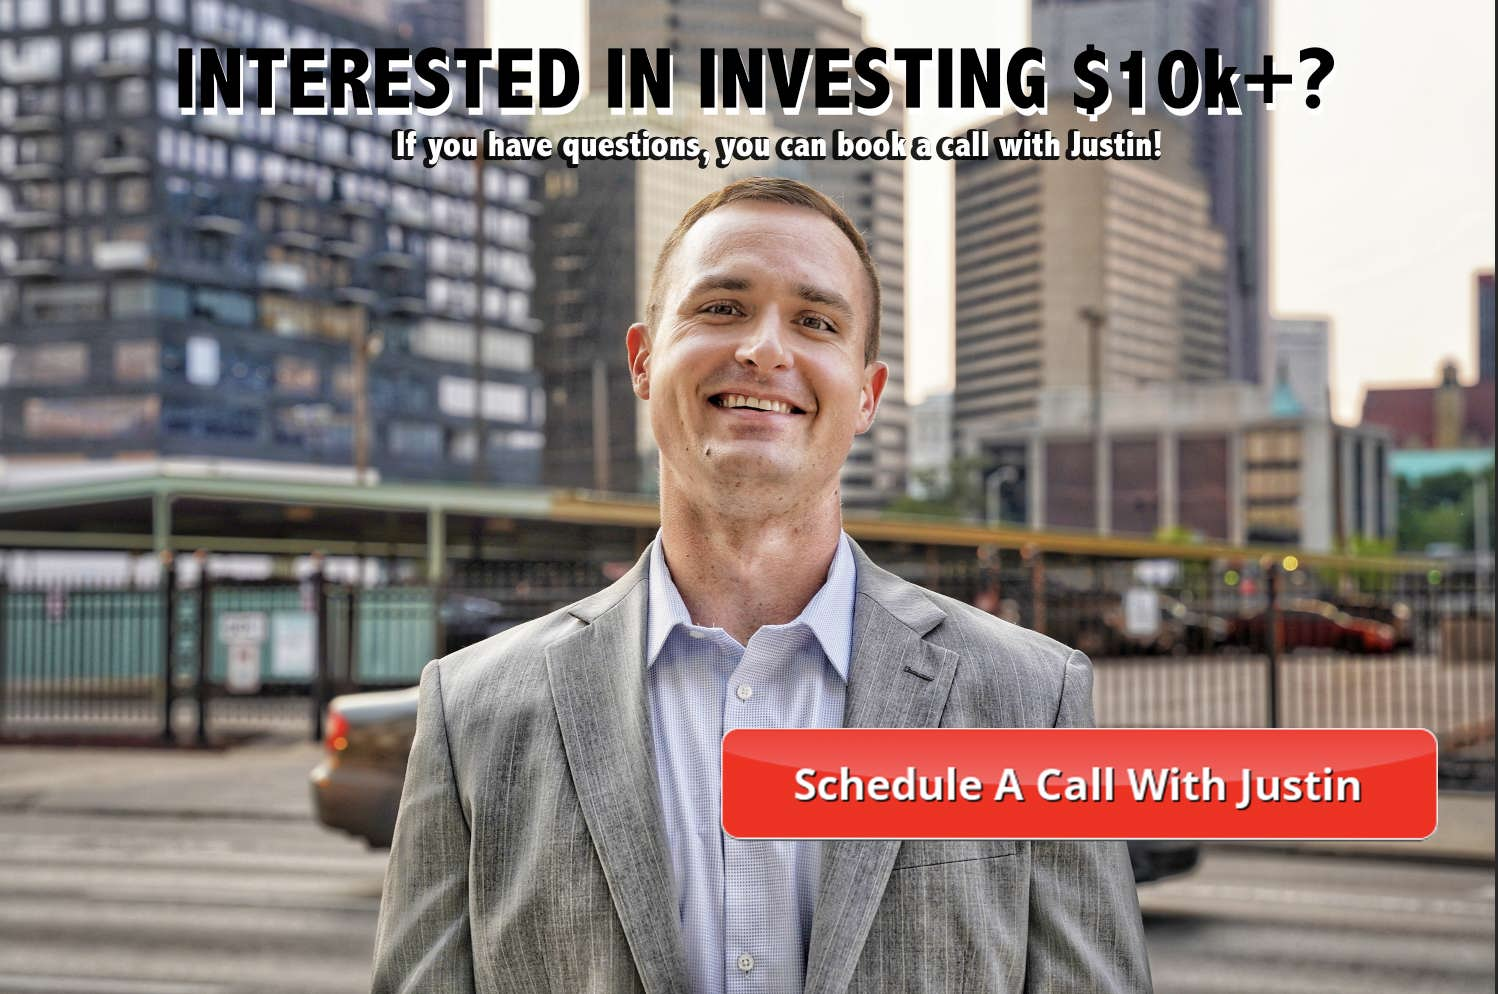 Schedule a call with Justin